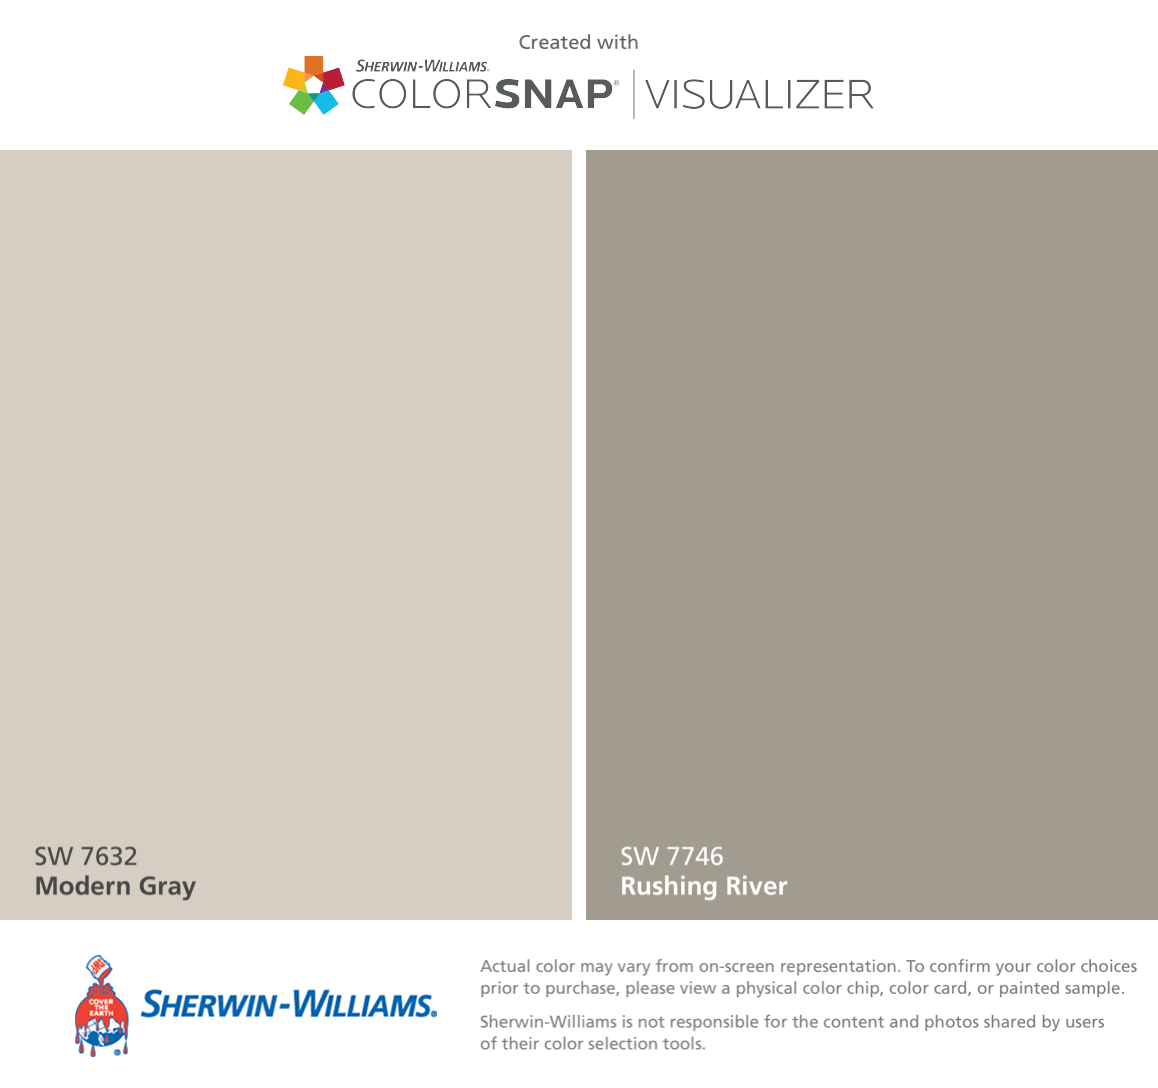 I found these colors with ColorSnap® Visualizer for iPhone by Sherwin-Williams: Modern Gray (SW 7632), Rushing River (SW 7746).